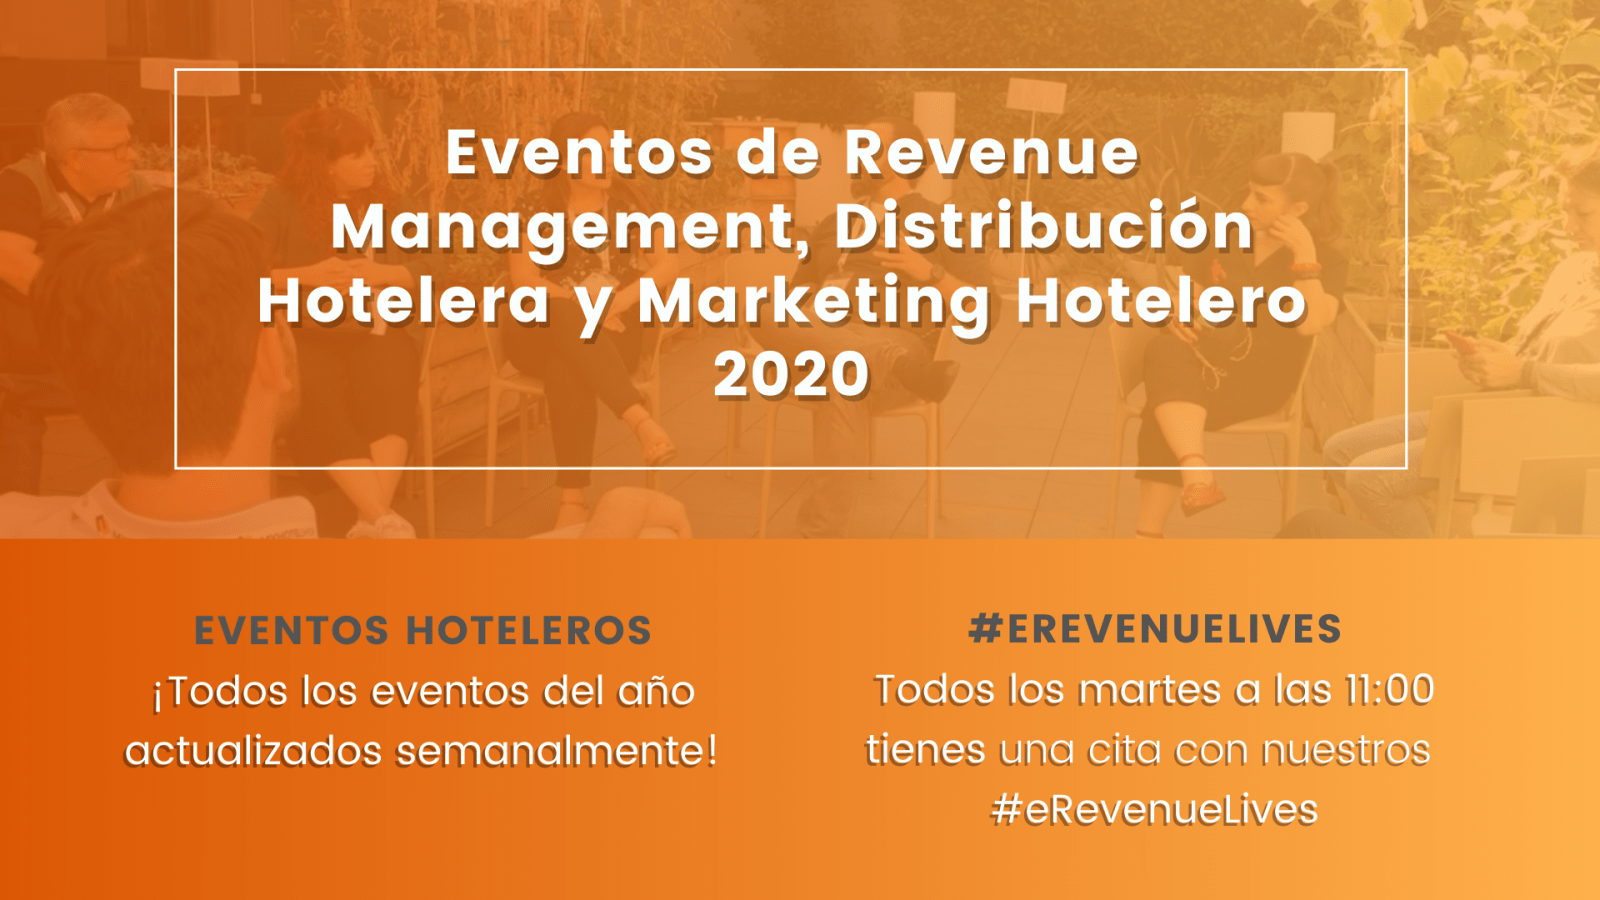 Eventos de Revenue Management, Distribución Hotelera y Marketing Hotelero 2020